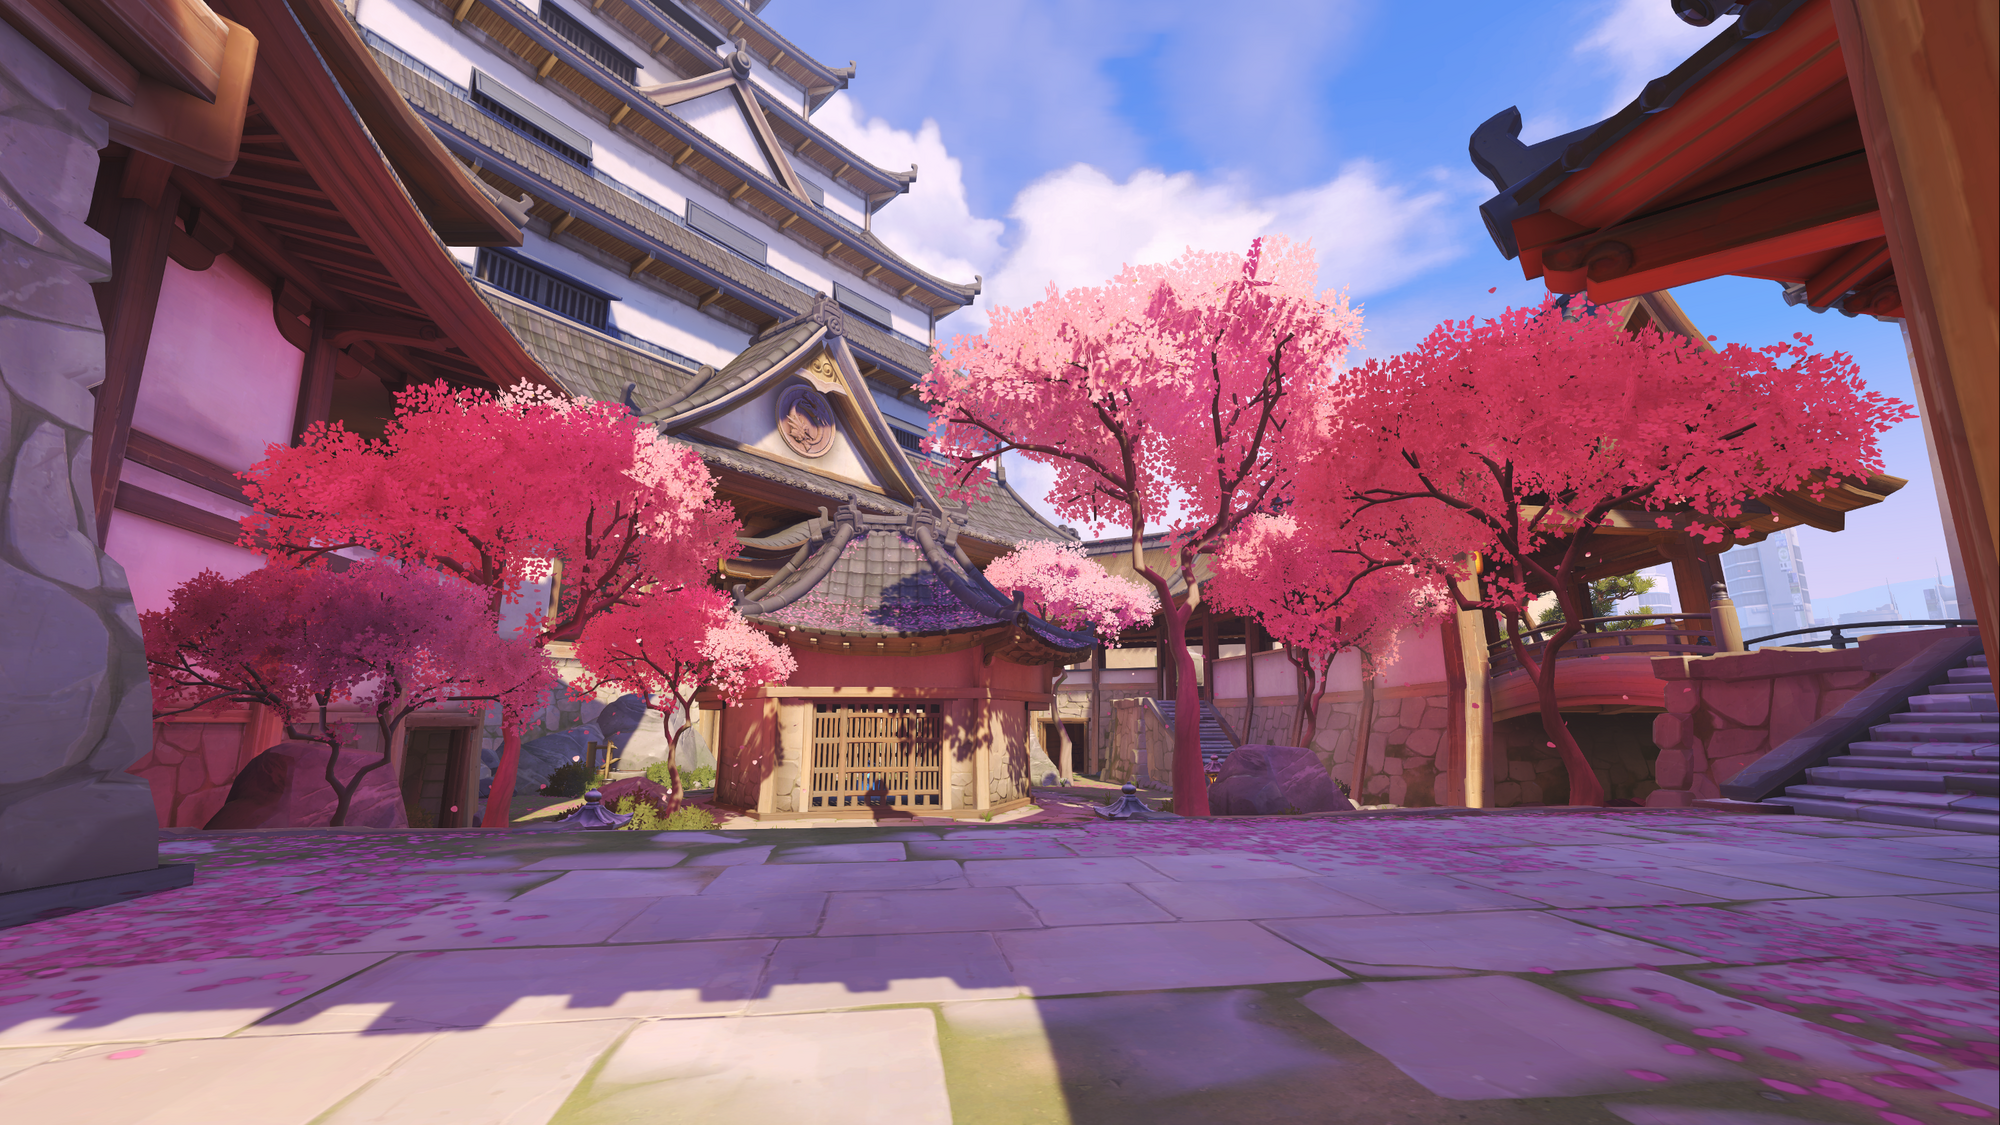 riseandshine screenshot 13png. contemporary screenshot image  hanamura screenshot 13png  overwatch wiki fandom powered by  wikia on riseandshine screenshot 13png